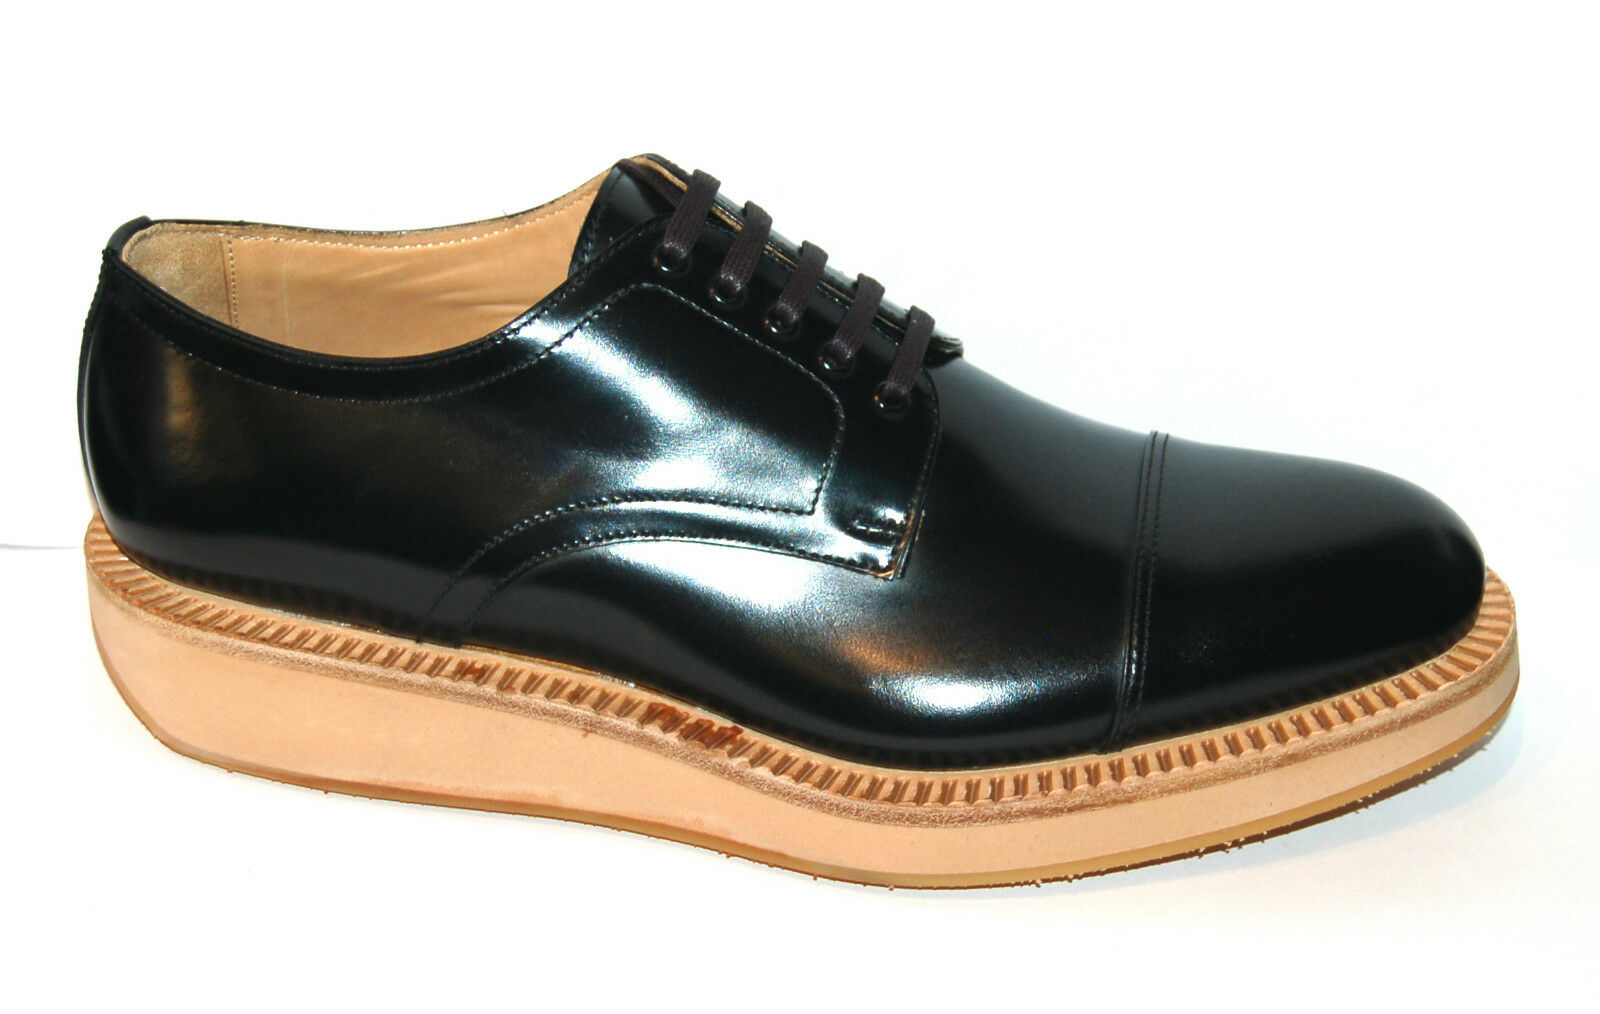 MAN DERBY - 9eu - BLACK CALF - WELTED LEATHER SOLE + MICRO WEDGE - BLAKE